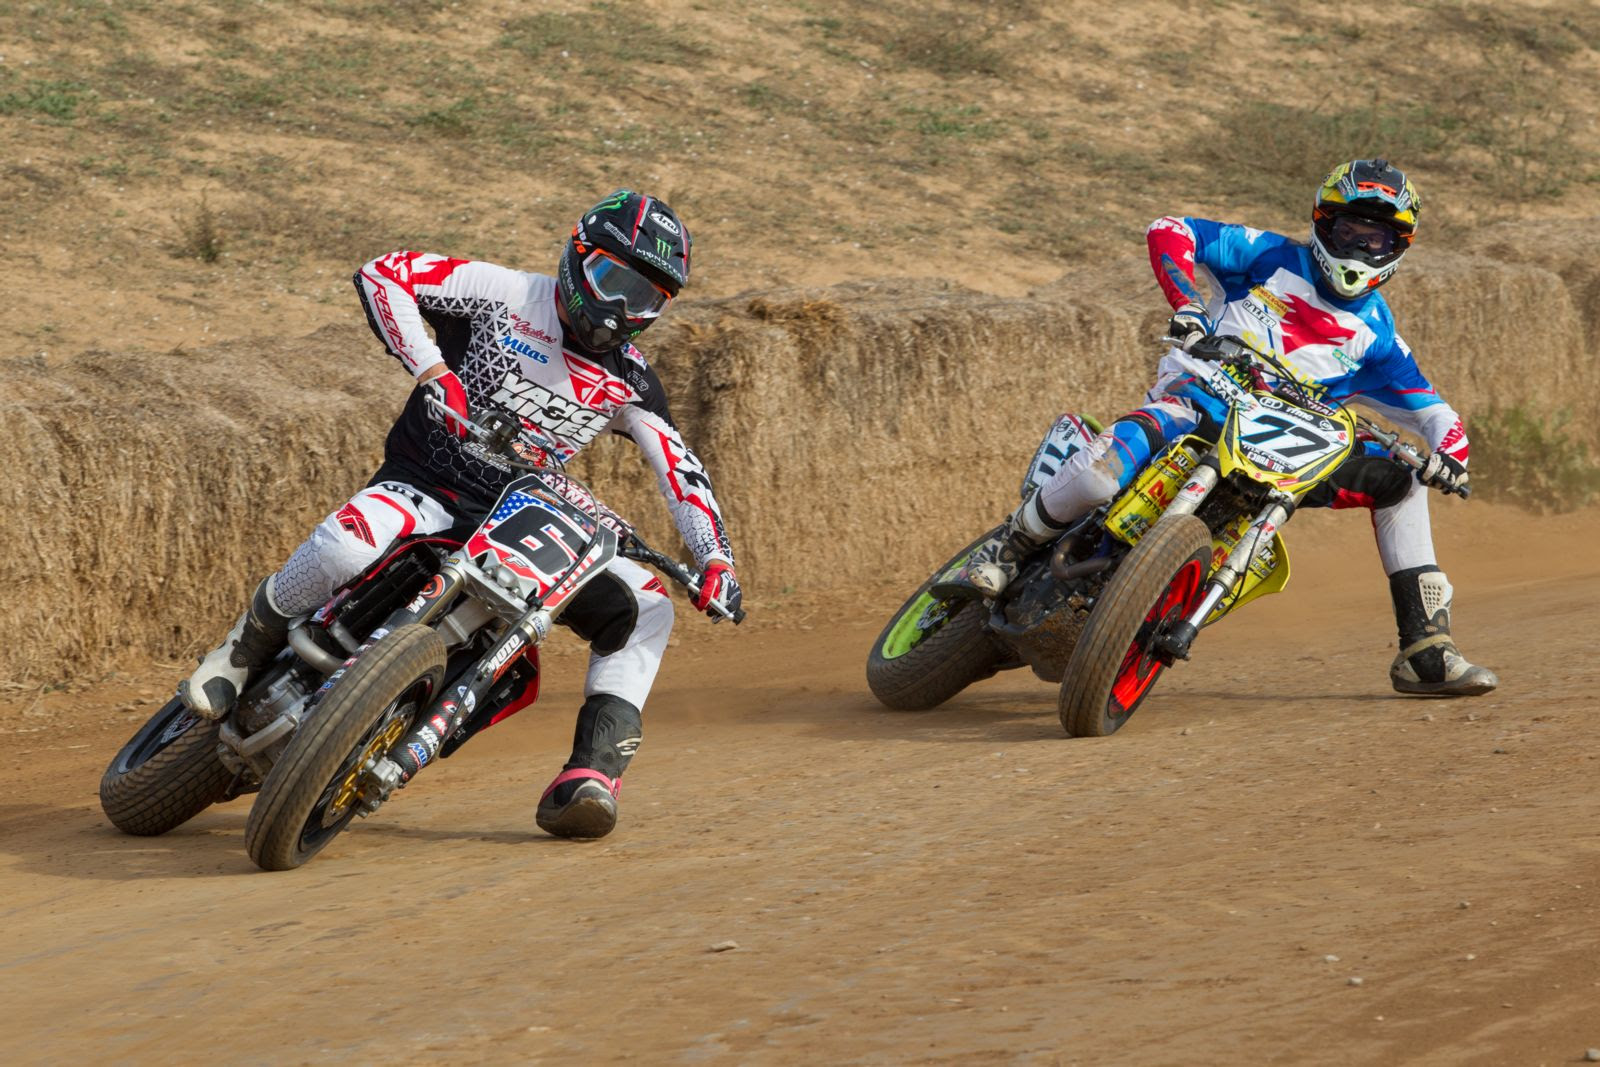 Spanish Flat Trackers to go head-to-head with stars of American Flat Track at DAYTONA TT